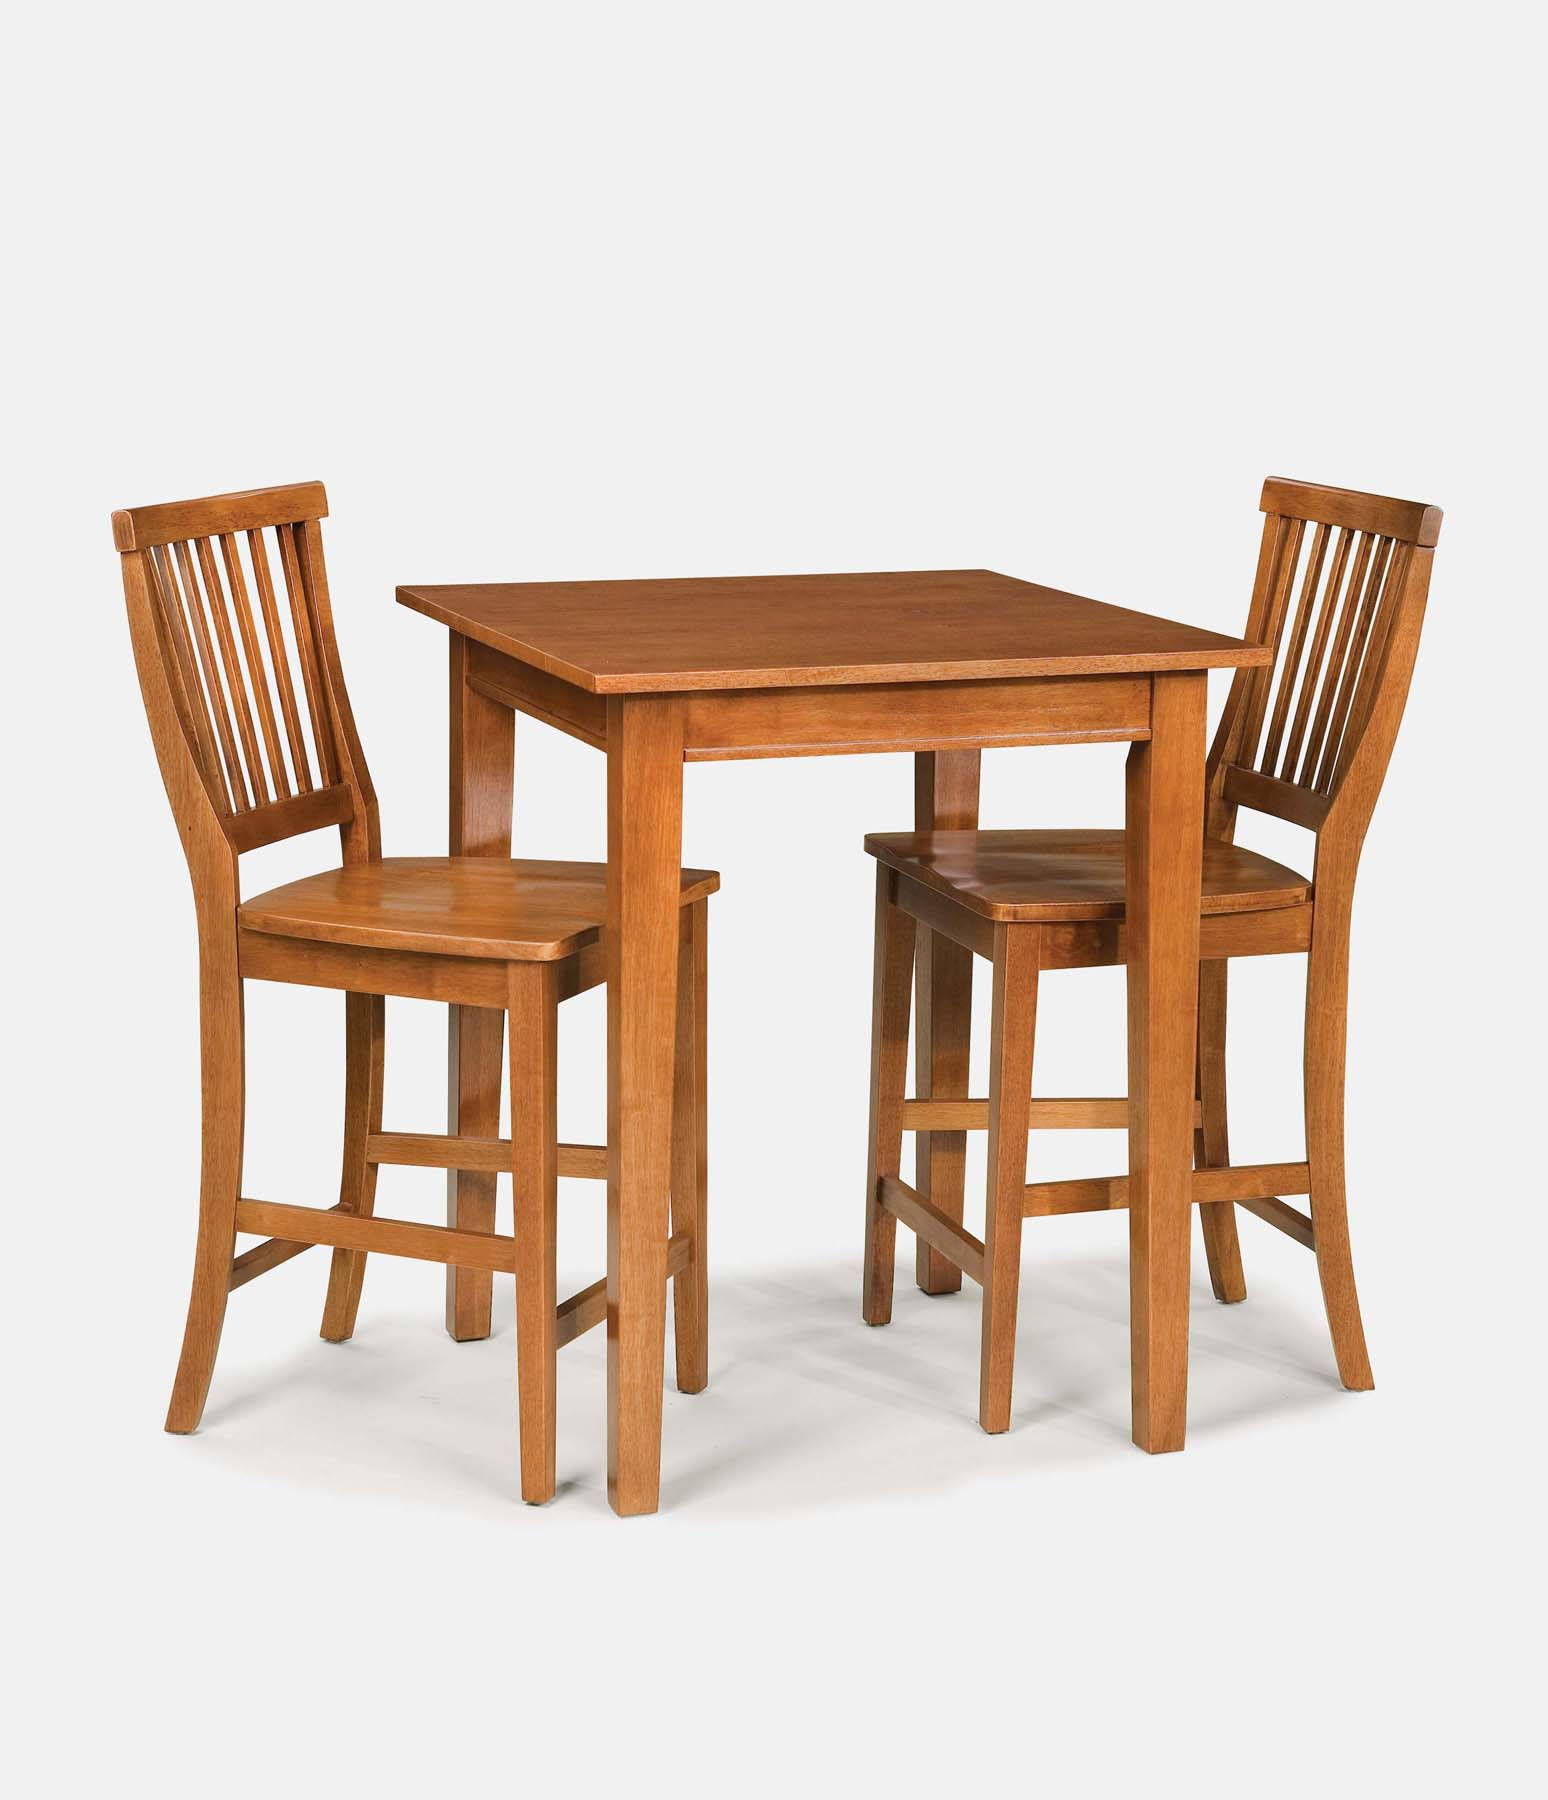 Best Bistro Table and Chairs for Home Furniture Ideas: Cool Bistro Table And Chairs For Home Furniture Ideas With Indoor Bistro Table And Chairs